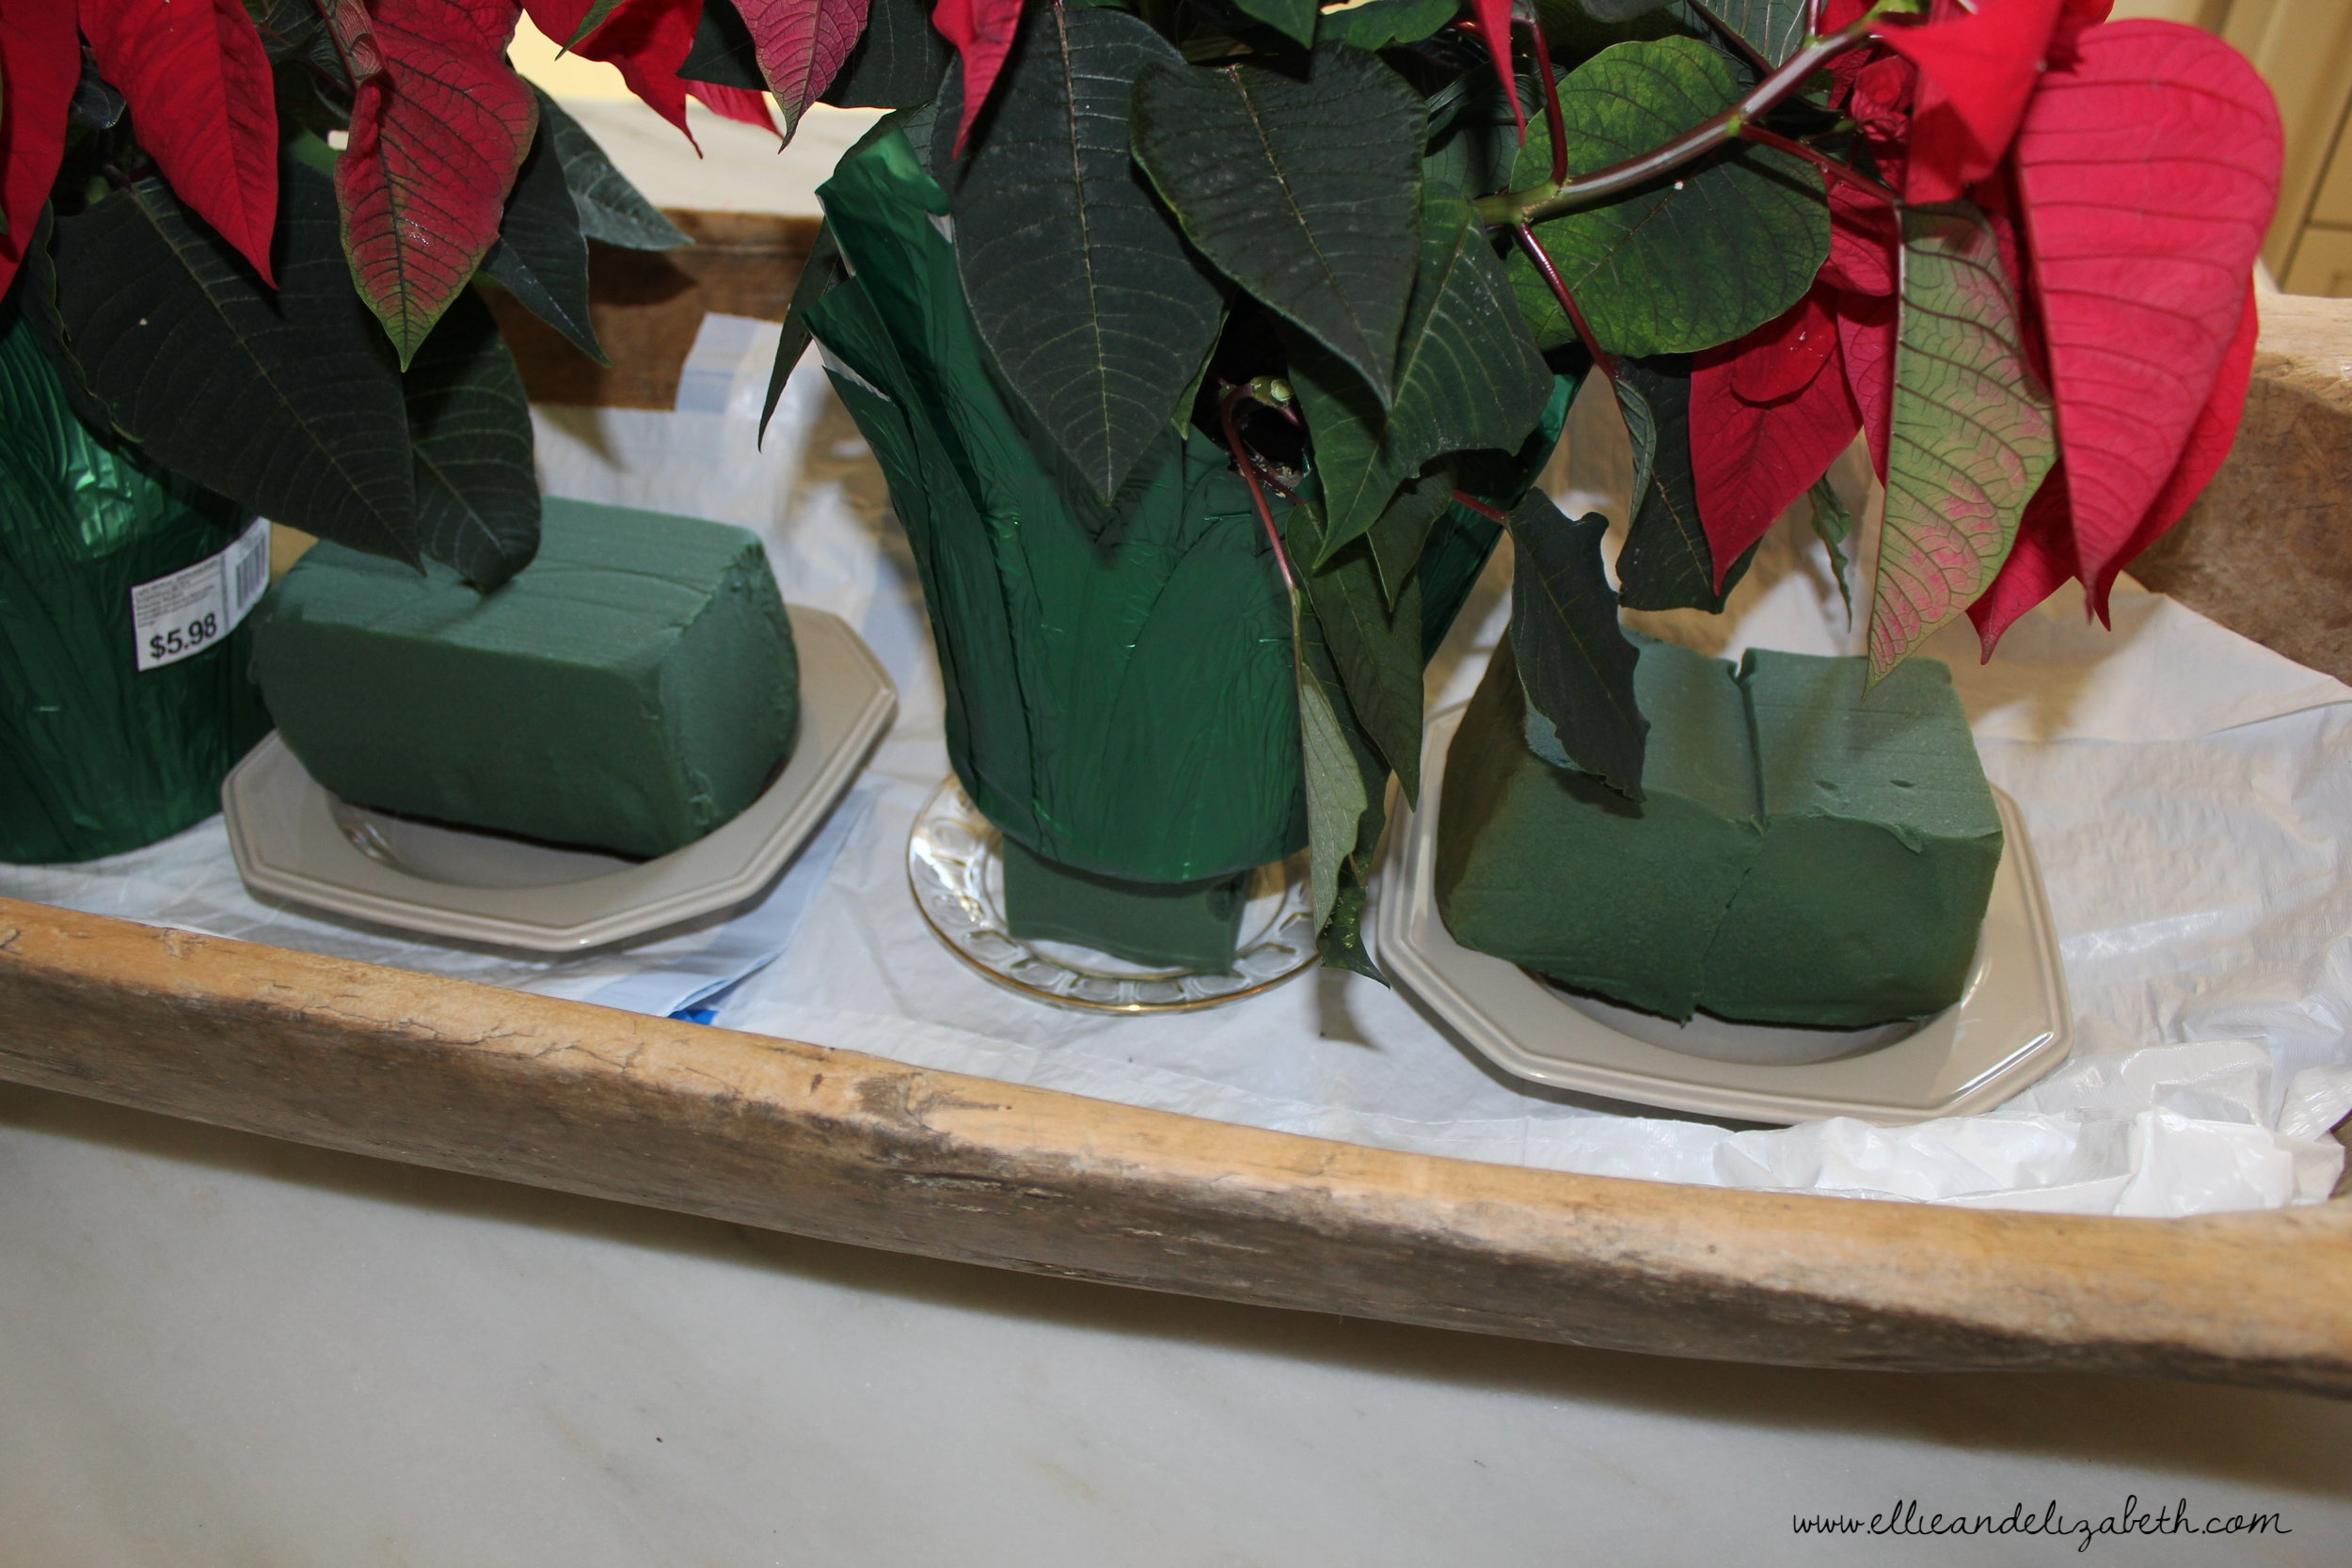 I used a foam brick under one poinsettia to make the plants the same height.